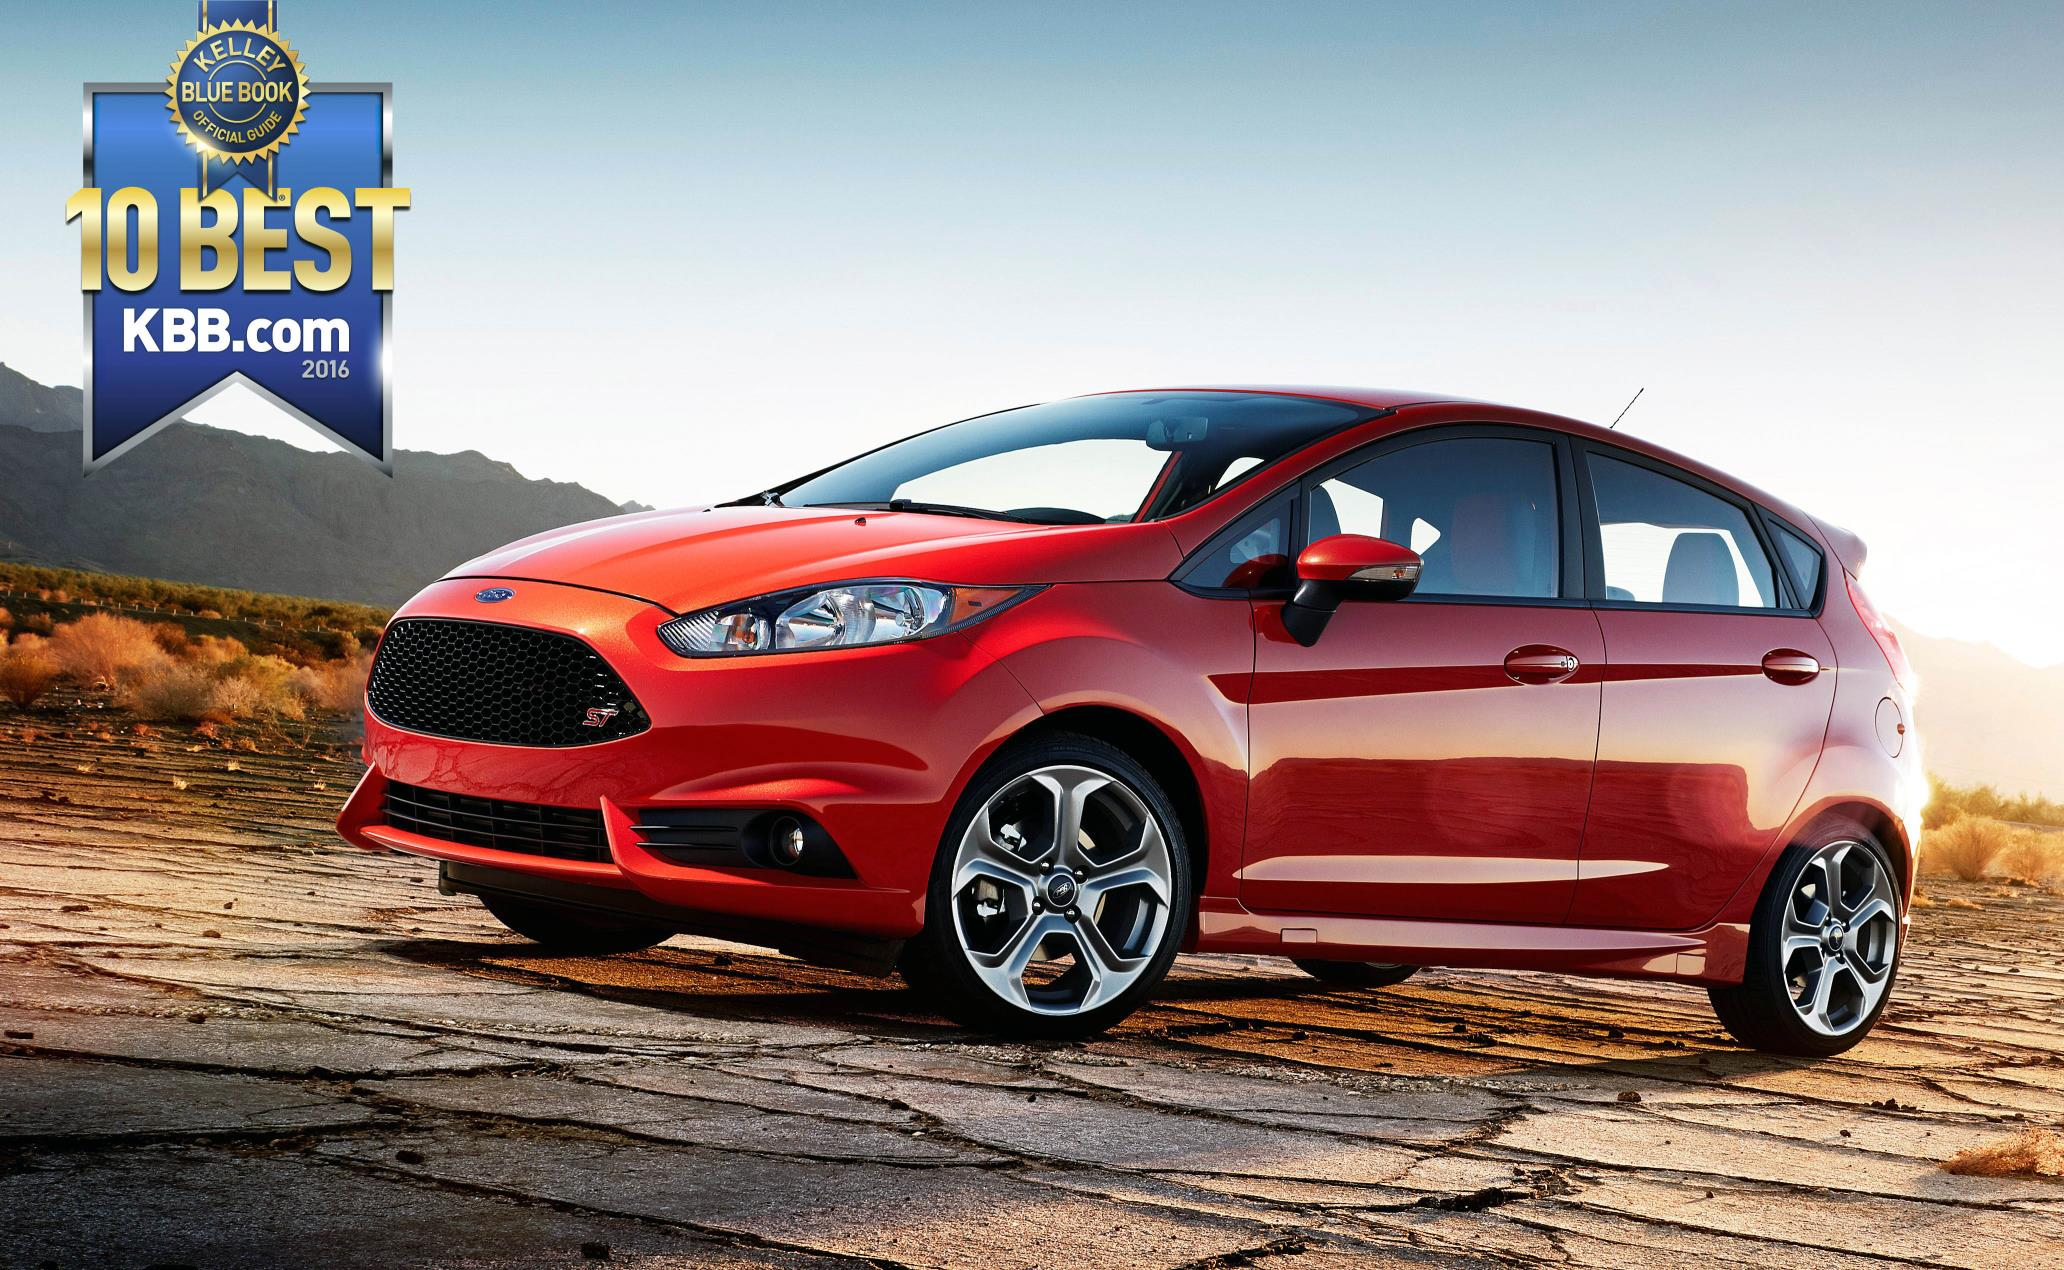 new ford model Blog Post List | Butler County Ford